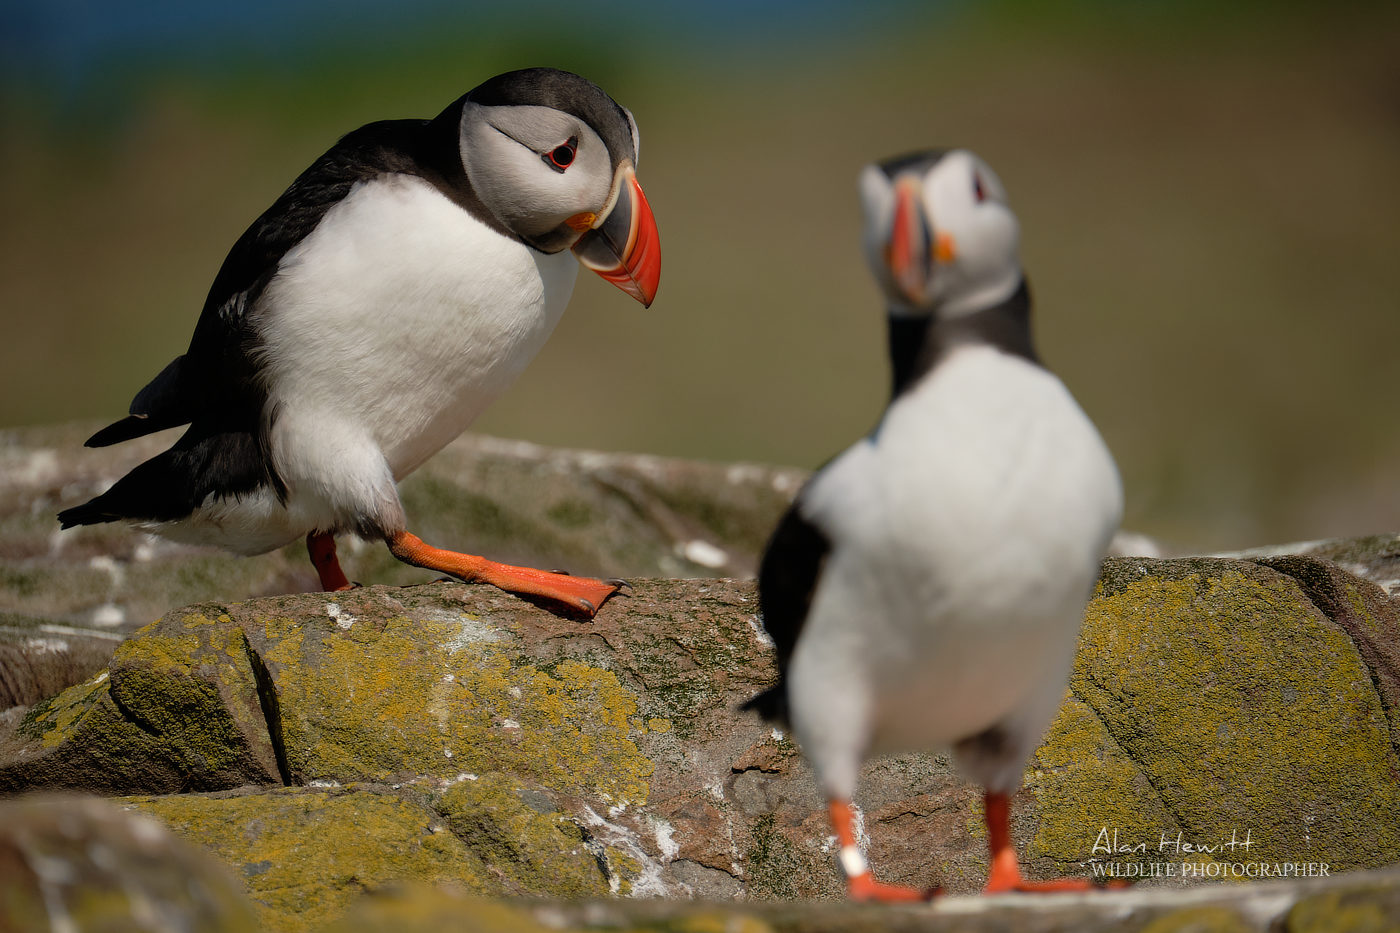 Atlantic Puffin Alan Hewitt Photography